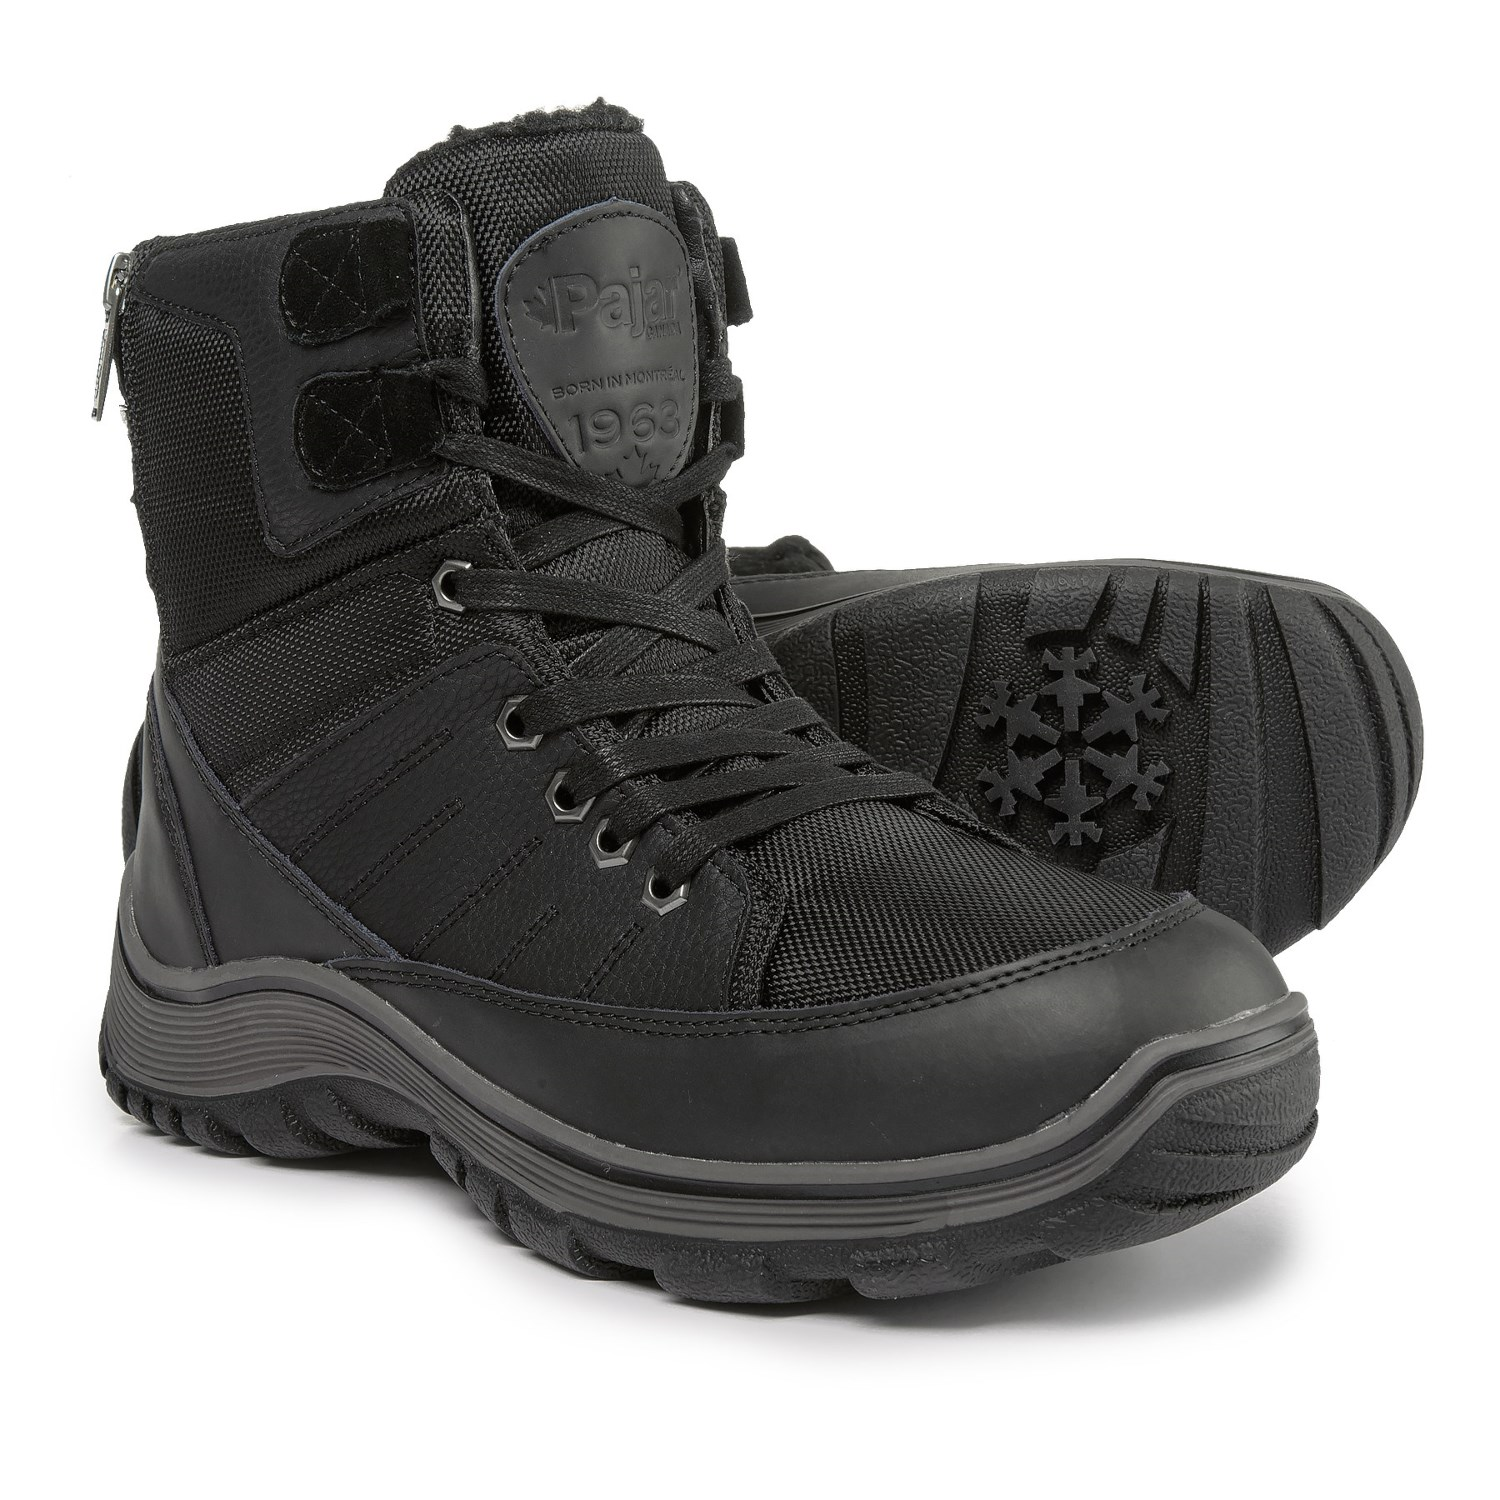 Pajar Alvin Snow Boots For Men Save 73